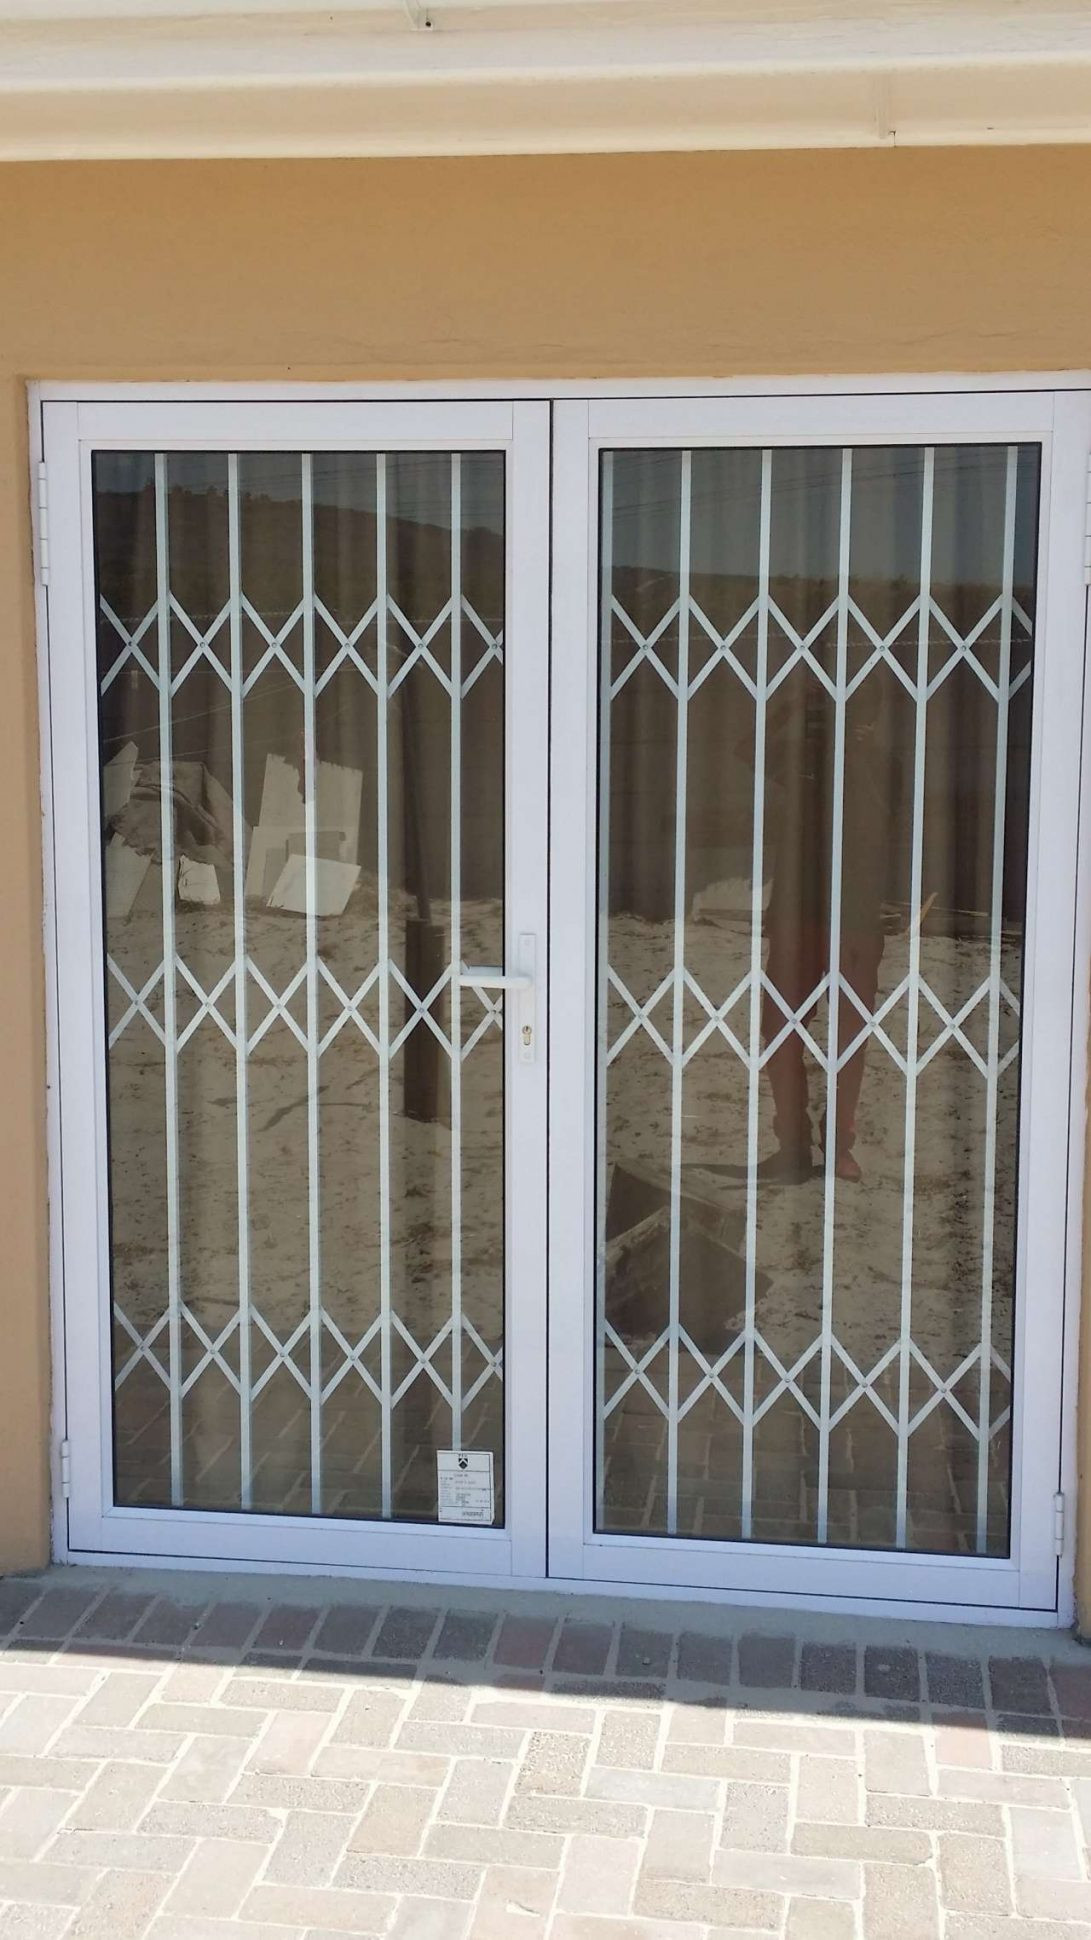 Best ideas about Lowes Sliding Patio Doors . Save or Pin Door Jammer Lowes & Image For Keyless Door Locks Now.